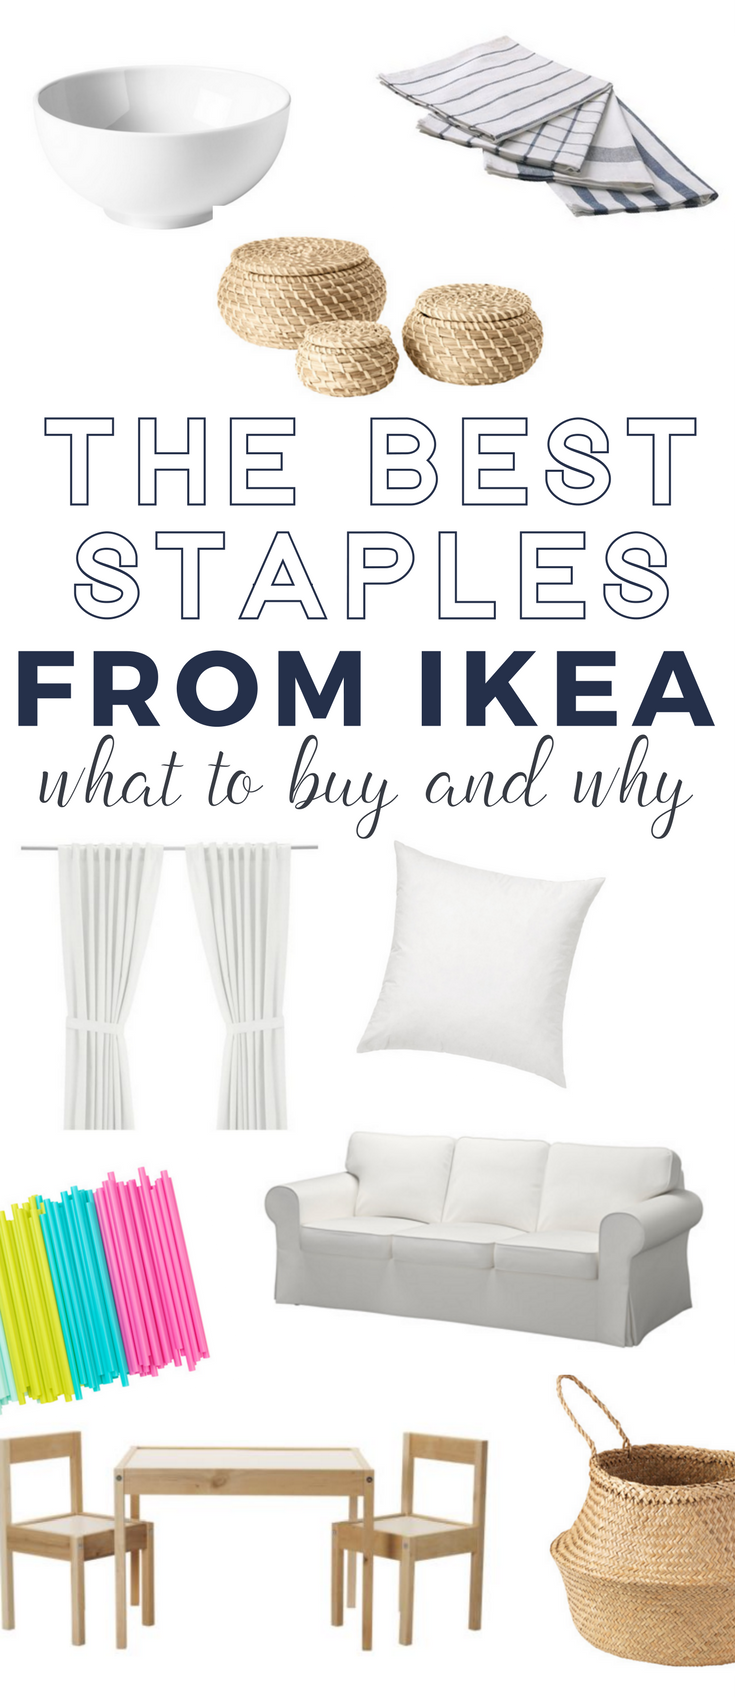 What to Buy at IKEA - a complete list of IKEA staples that everyone should know about